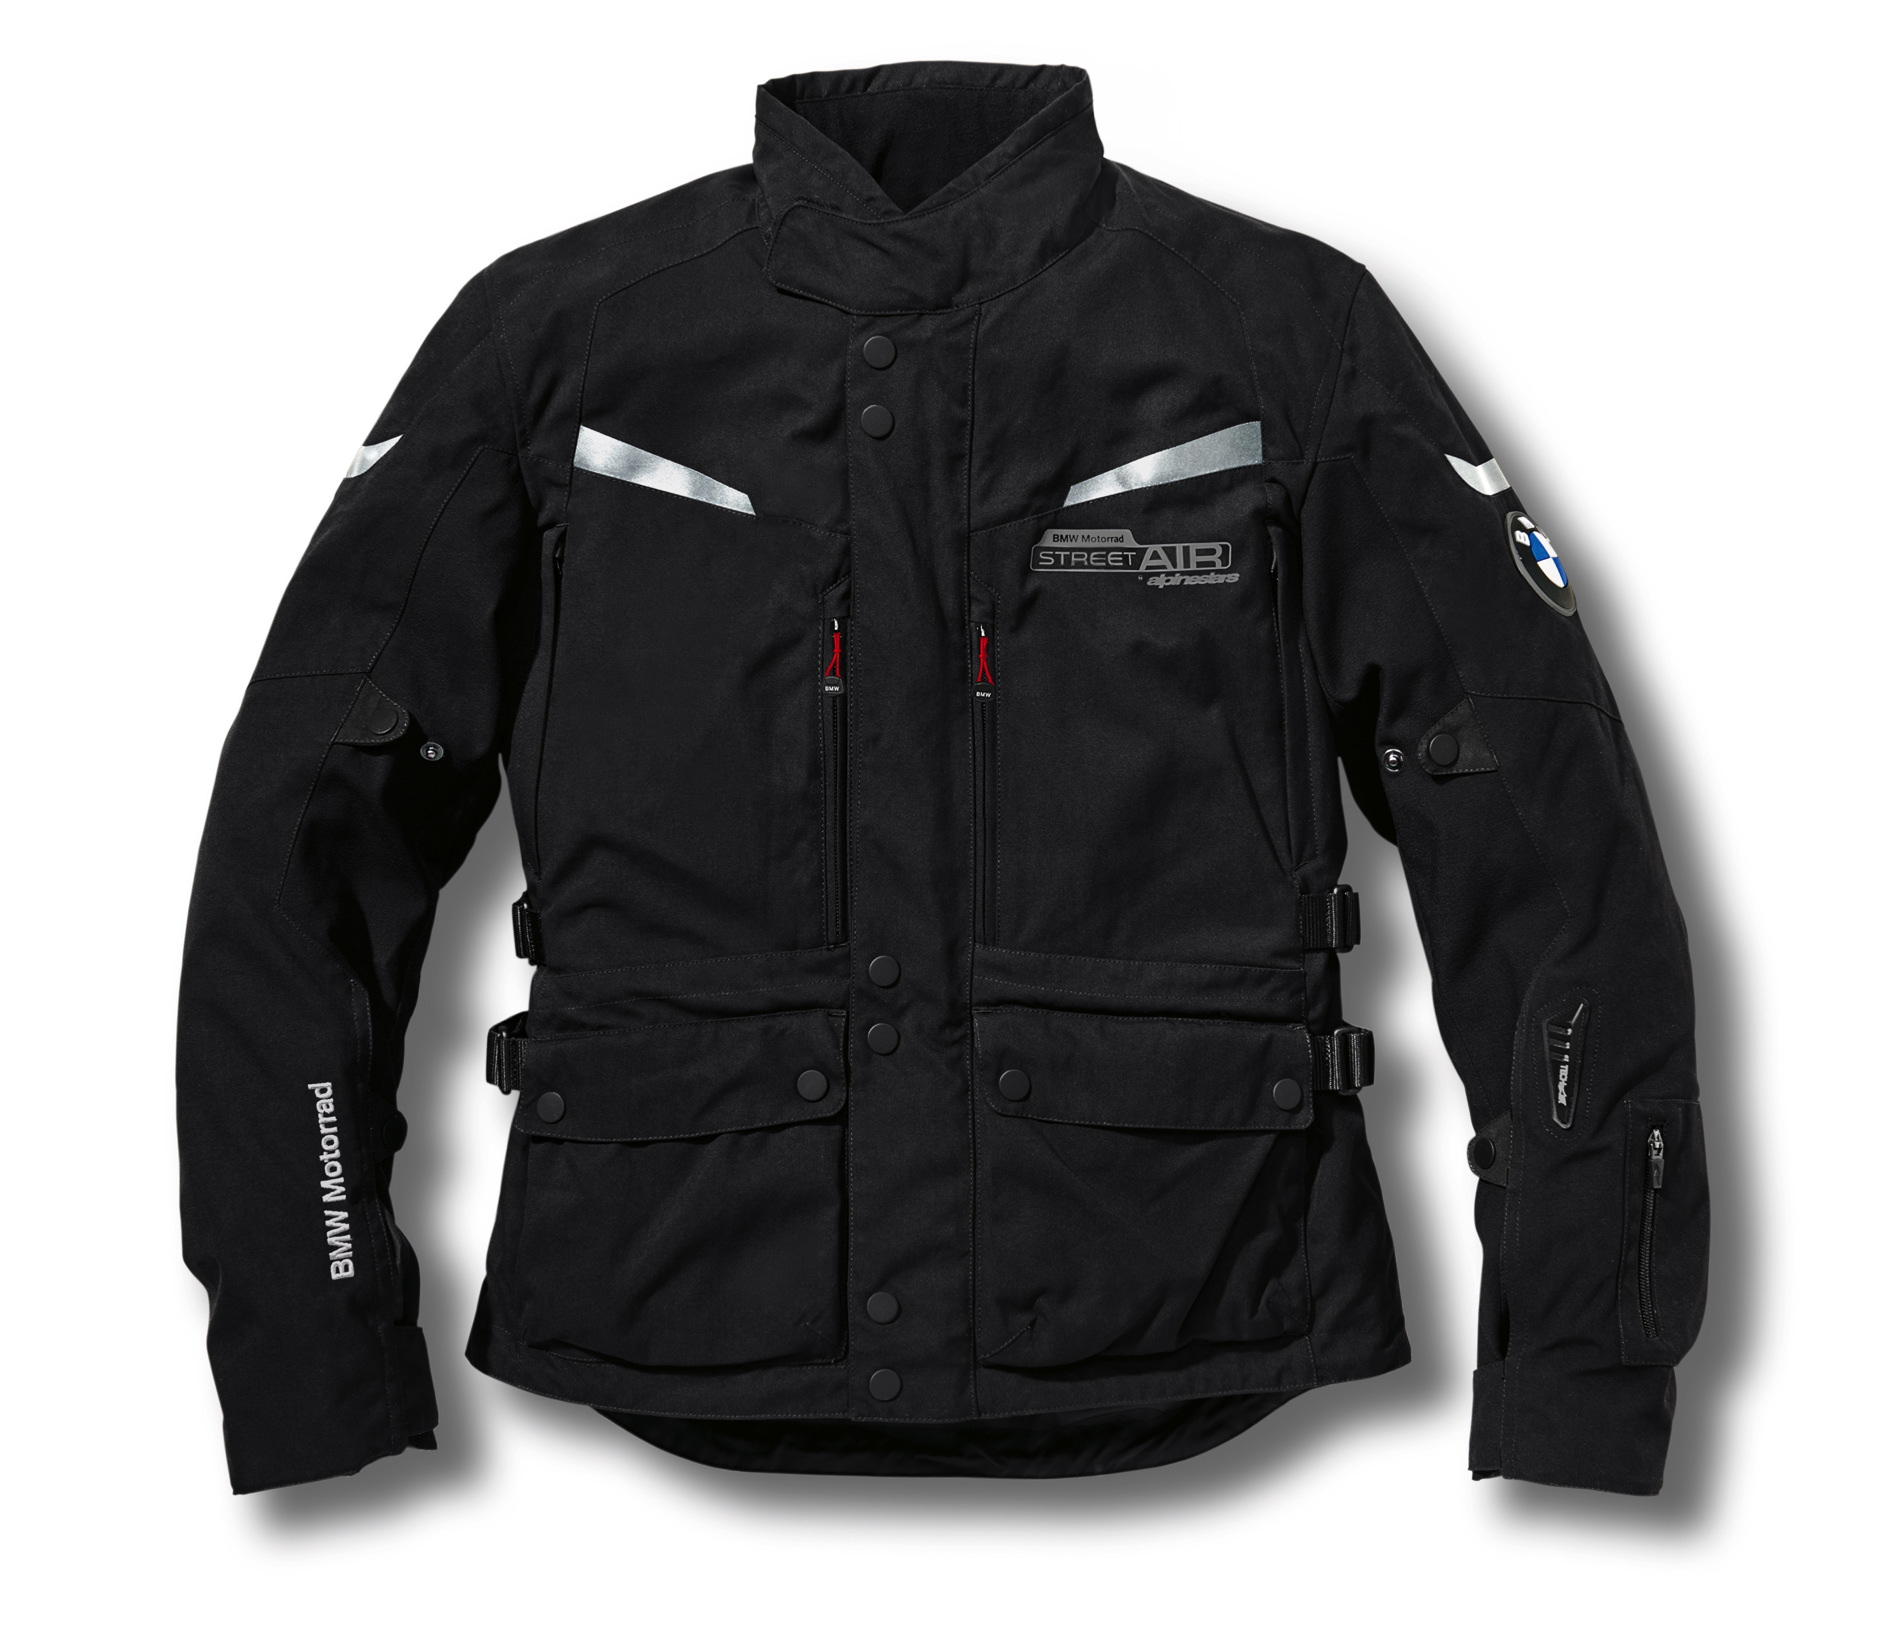 BMW Airbag Jacket Street Air Dry Alpinestars 2